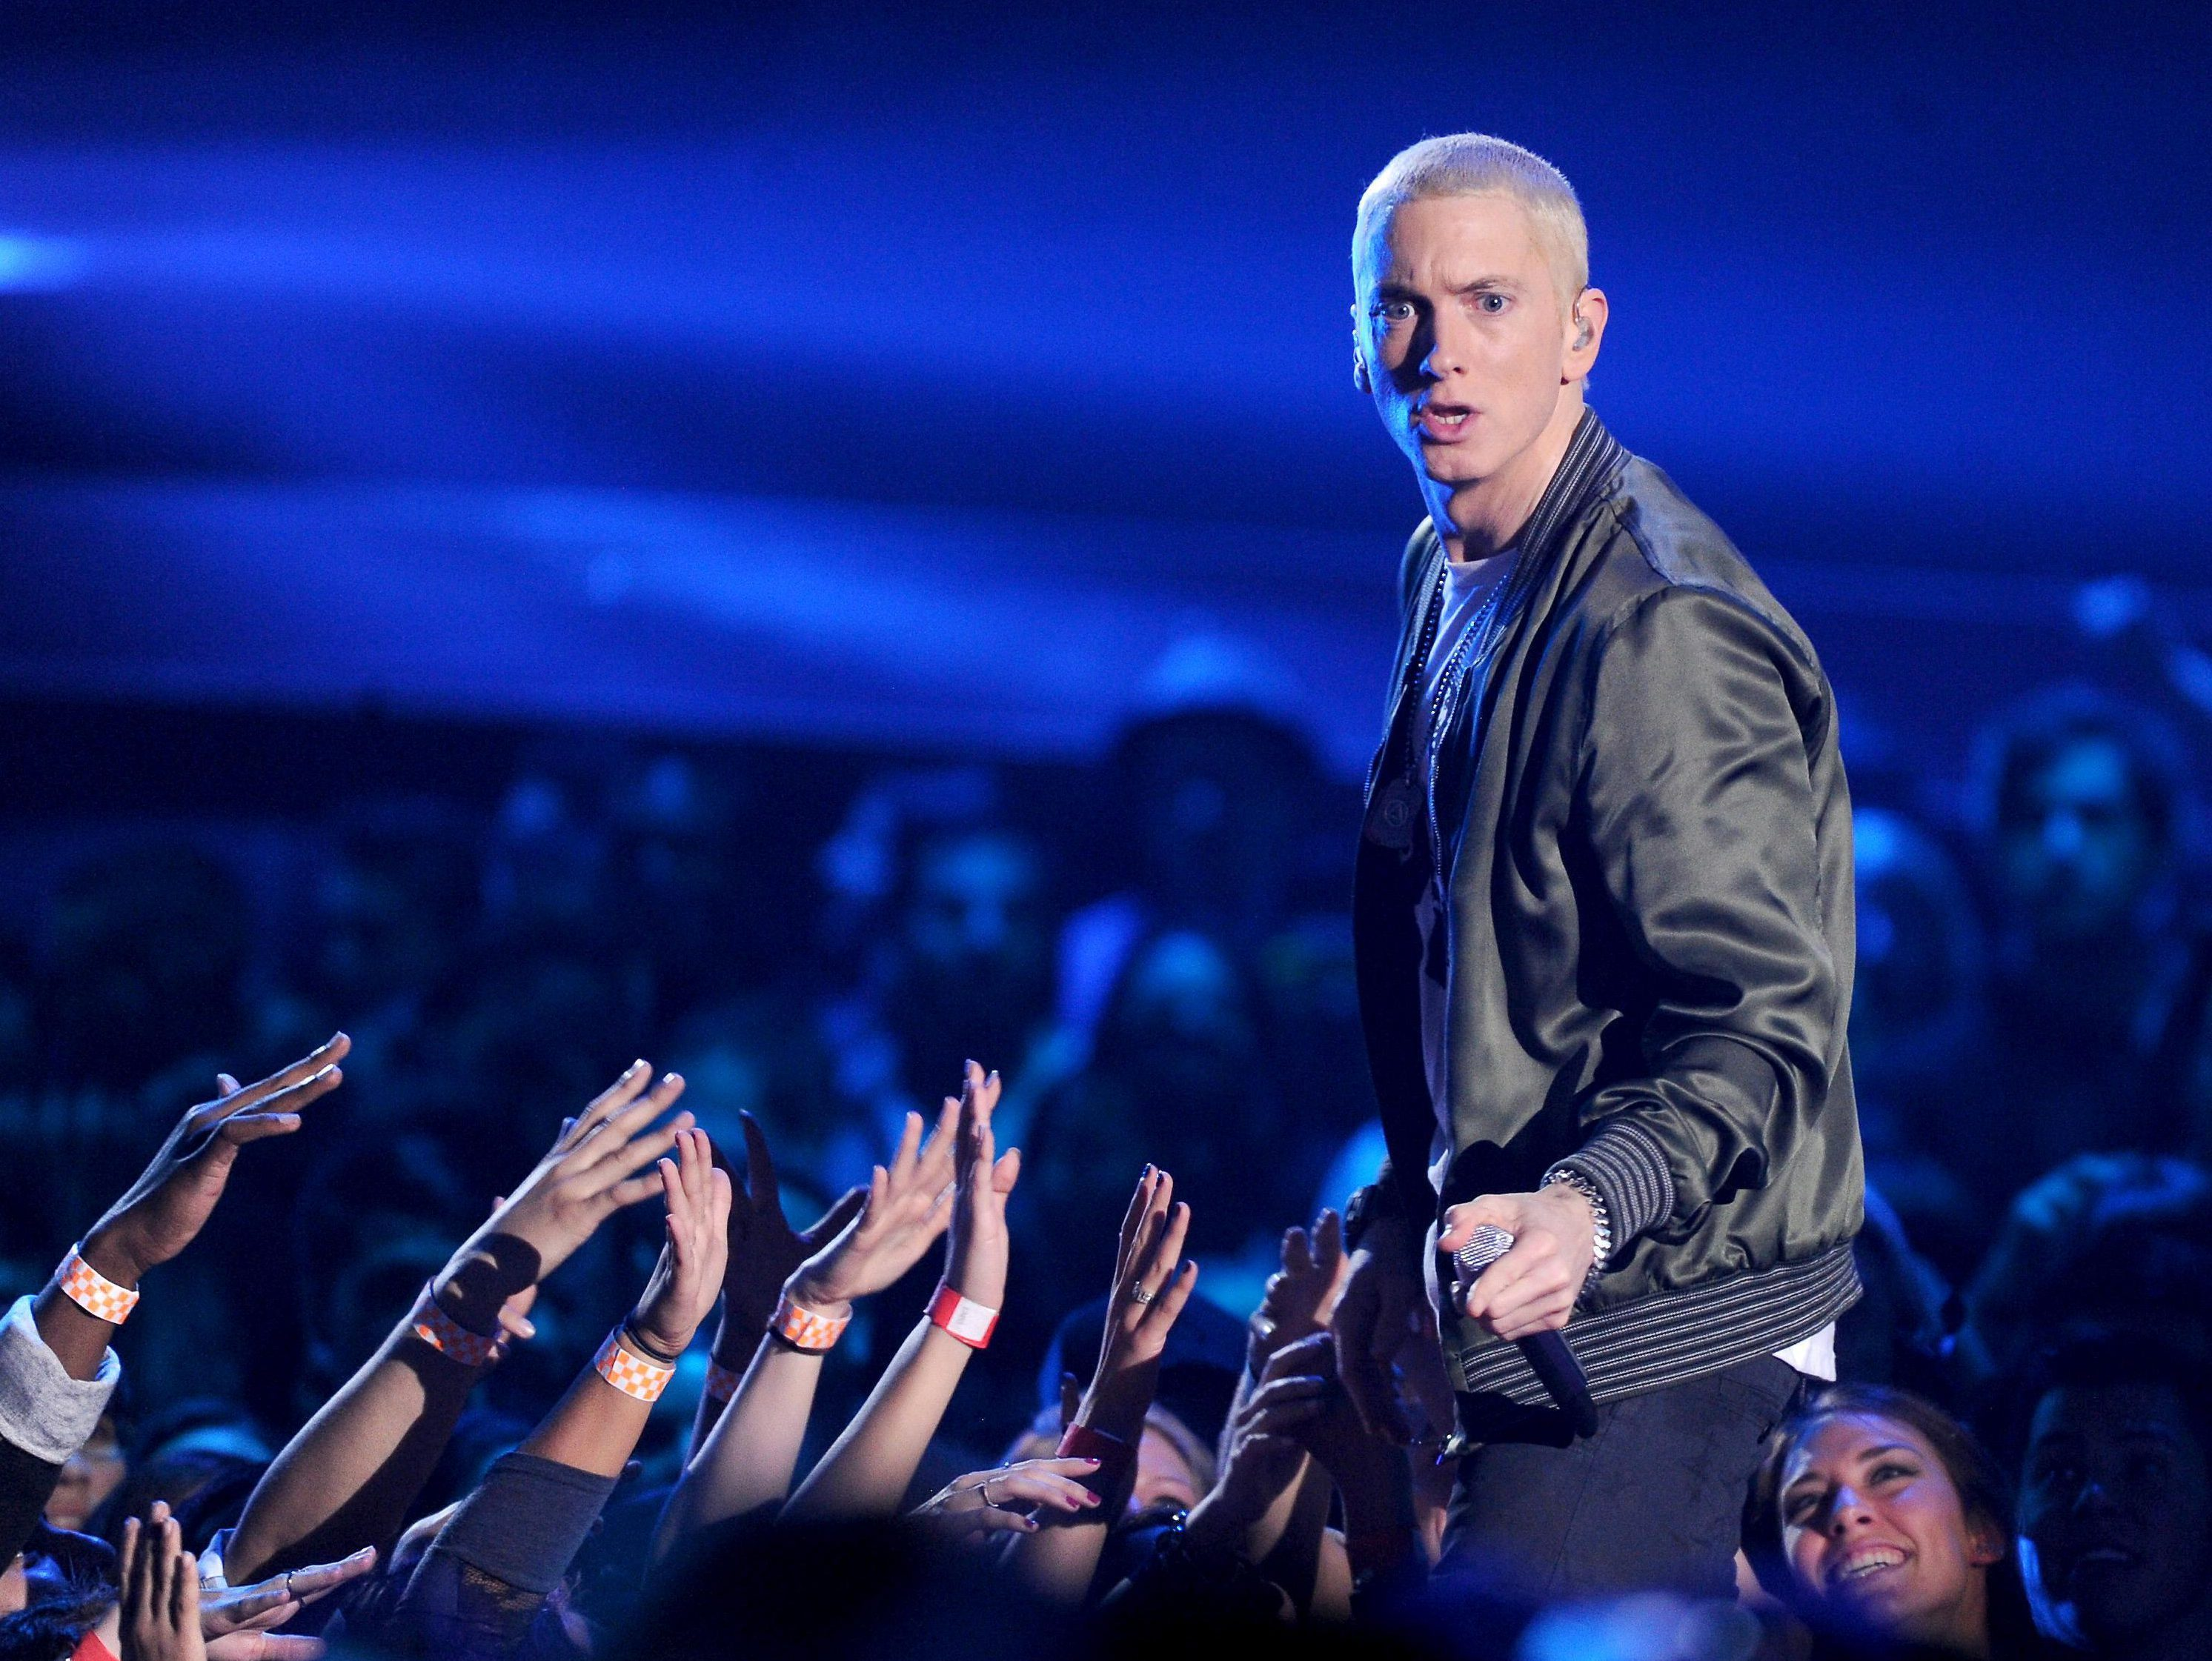 Eminem UK Revival Tour 2018 – how to get tickets TODAY for the Twickenham Stadium performances in July